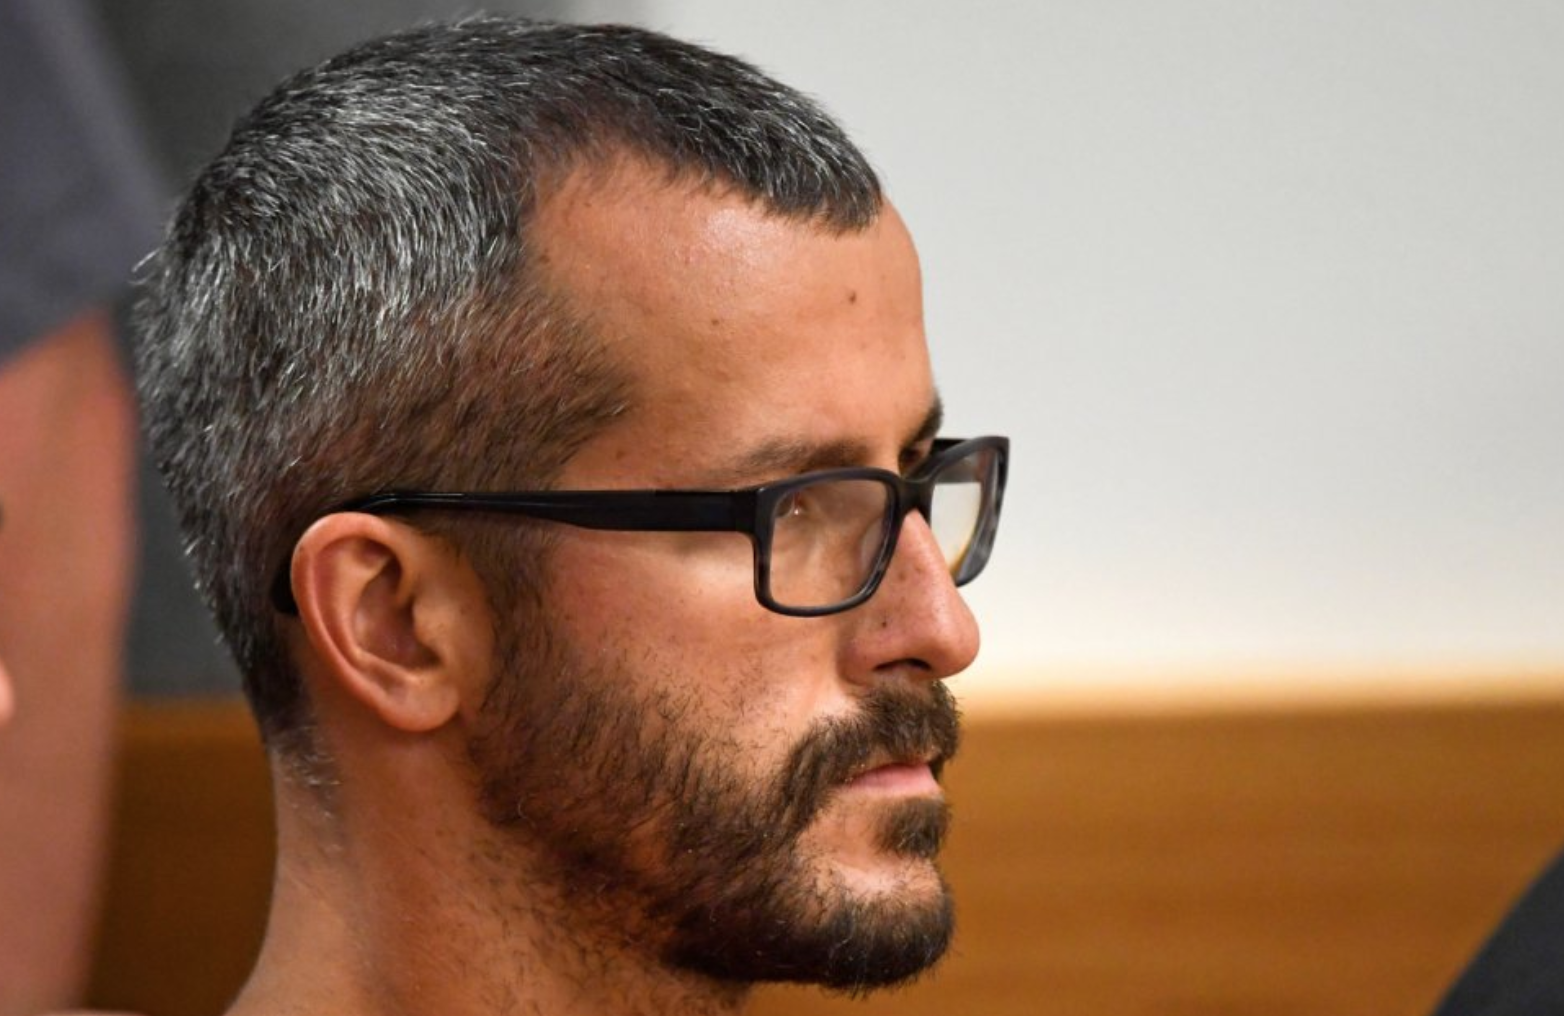 On November 19, Chris Watts was locked up for life without the possibility of a plea deal for the murder of his family. (Twitter)